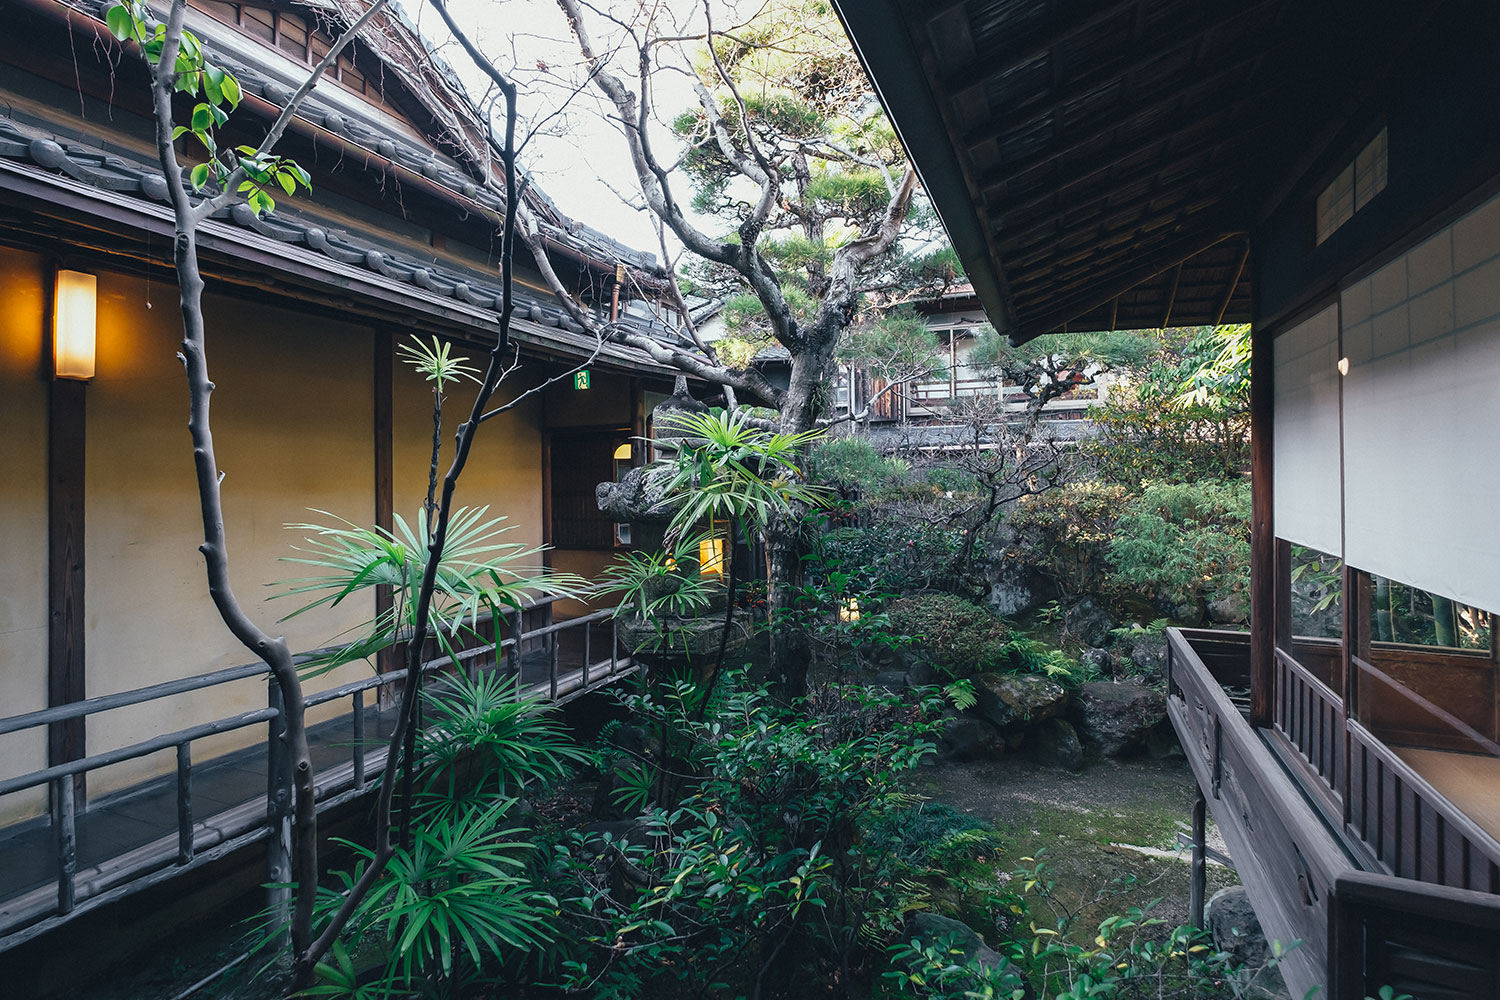 A Detached Building From the Edo Period Moved by Structure Relocation